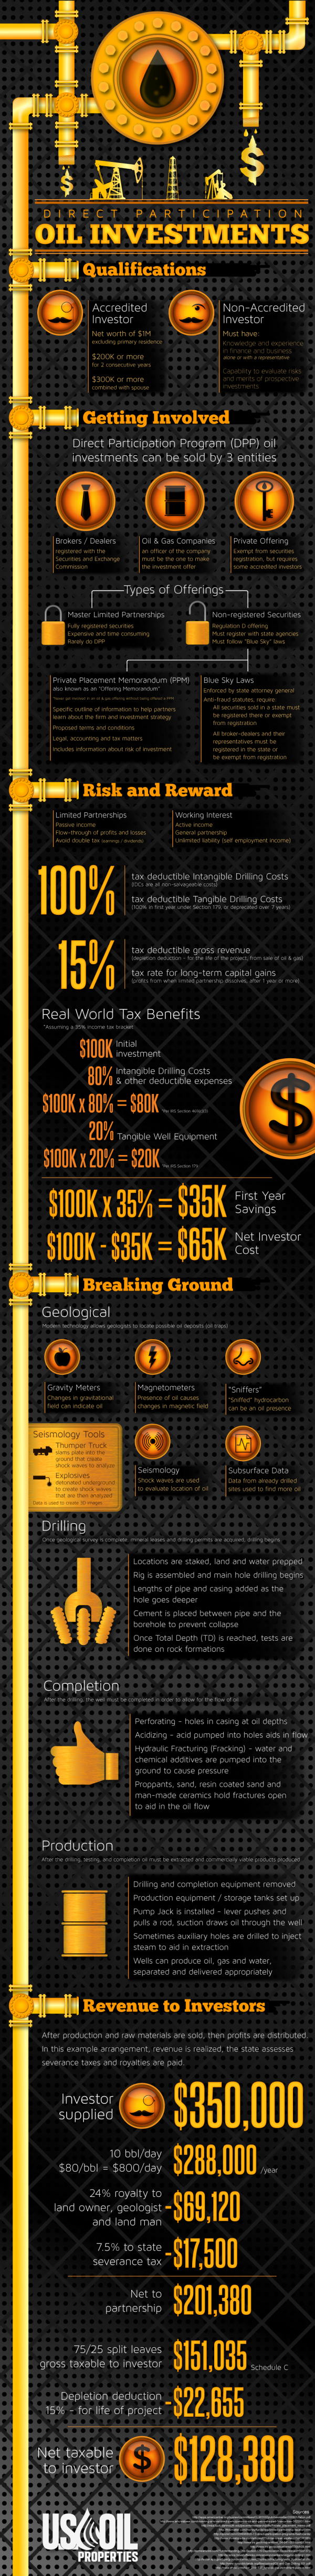 Oil-Investments-Infographic